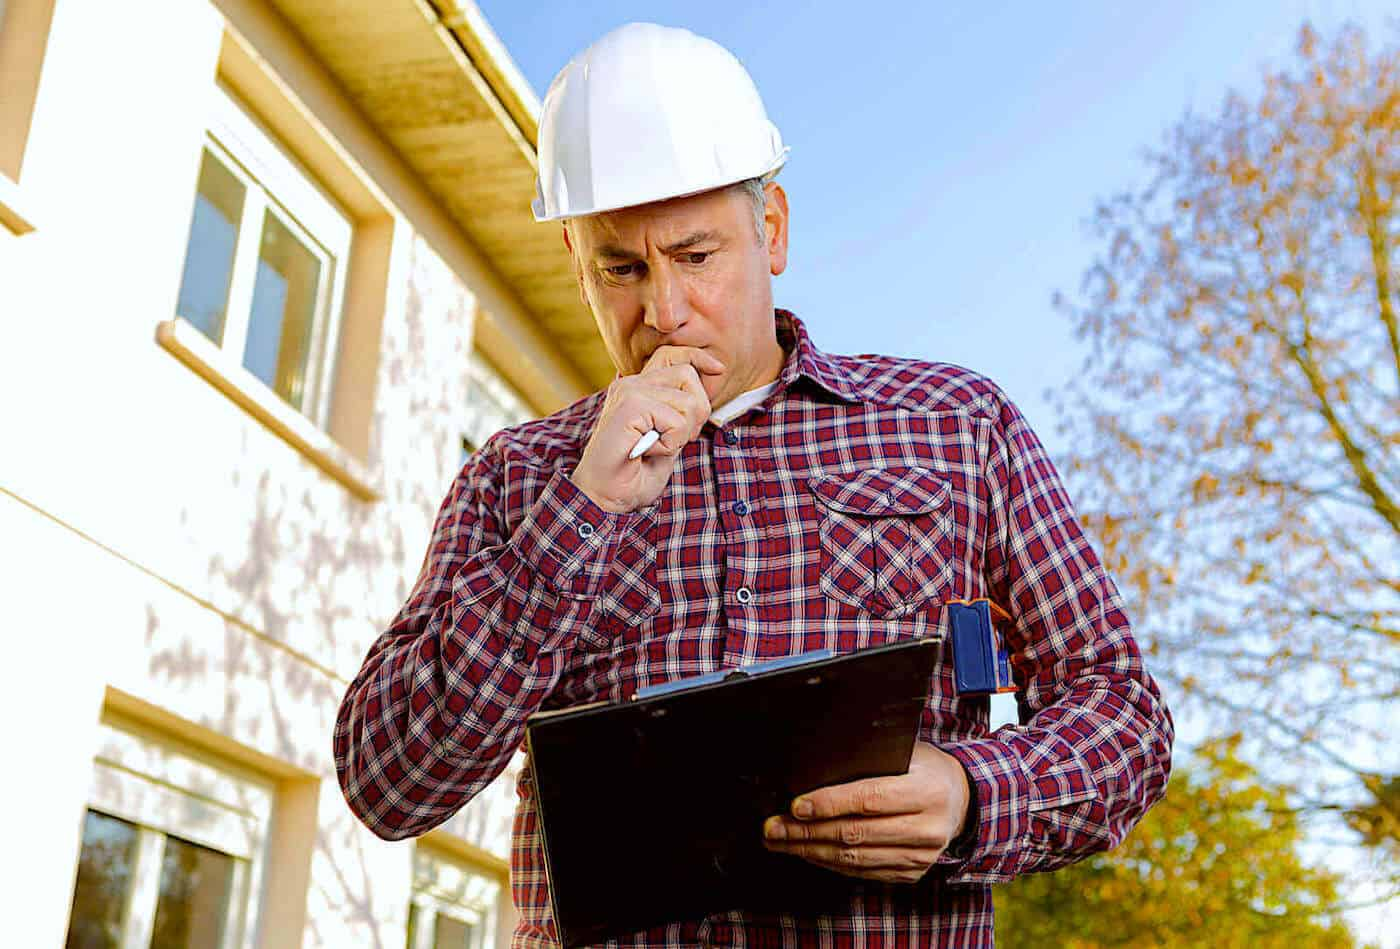 Property Insurance Claim Appraiser in Texas